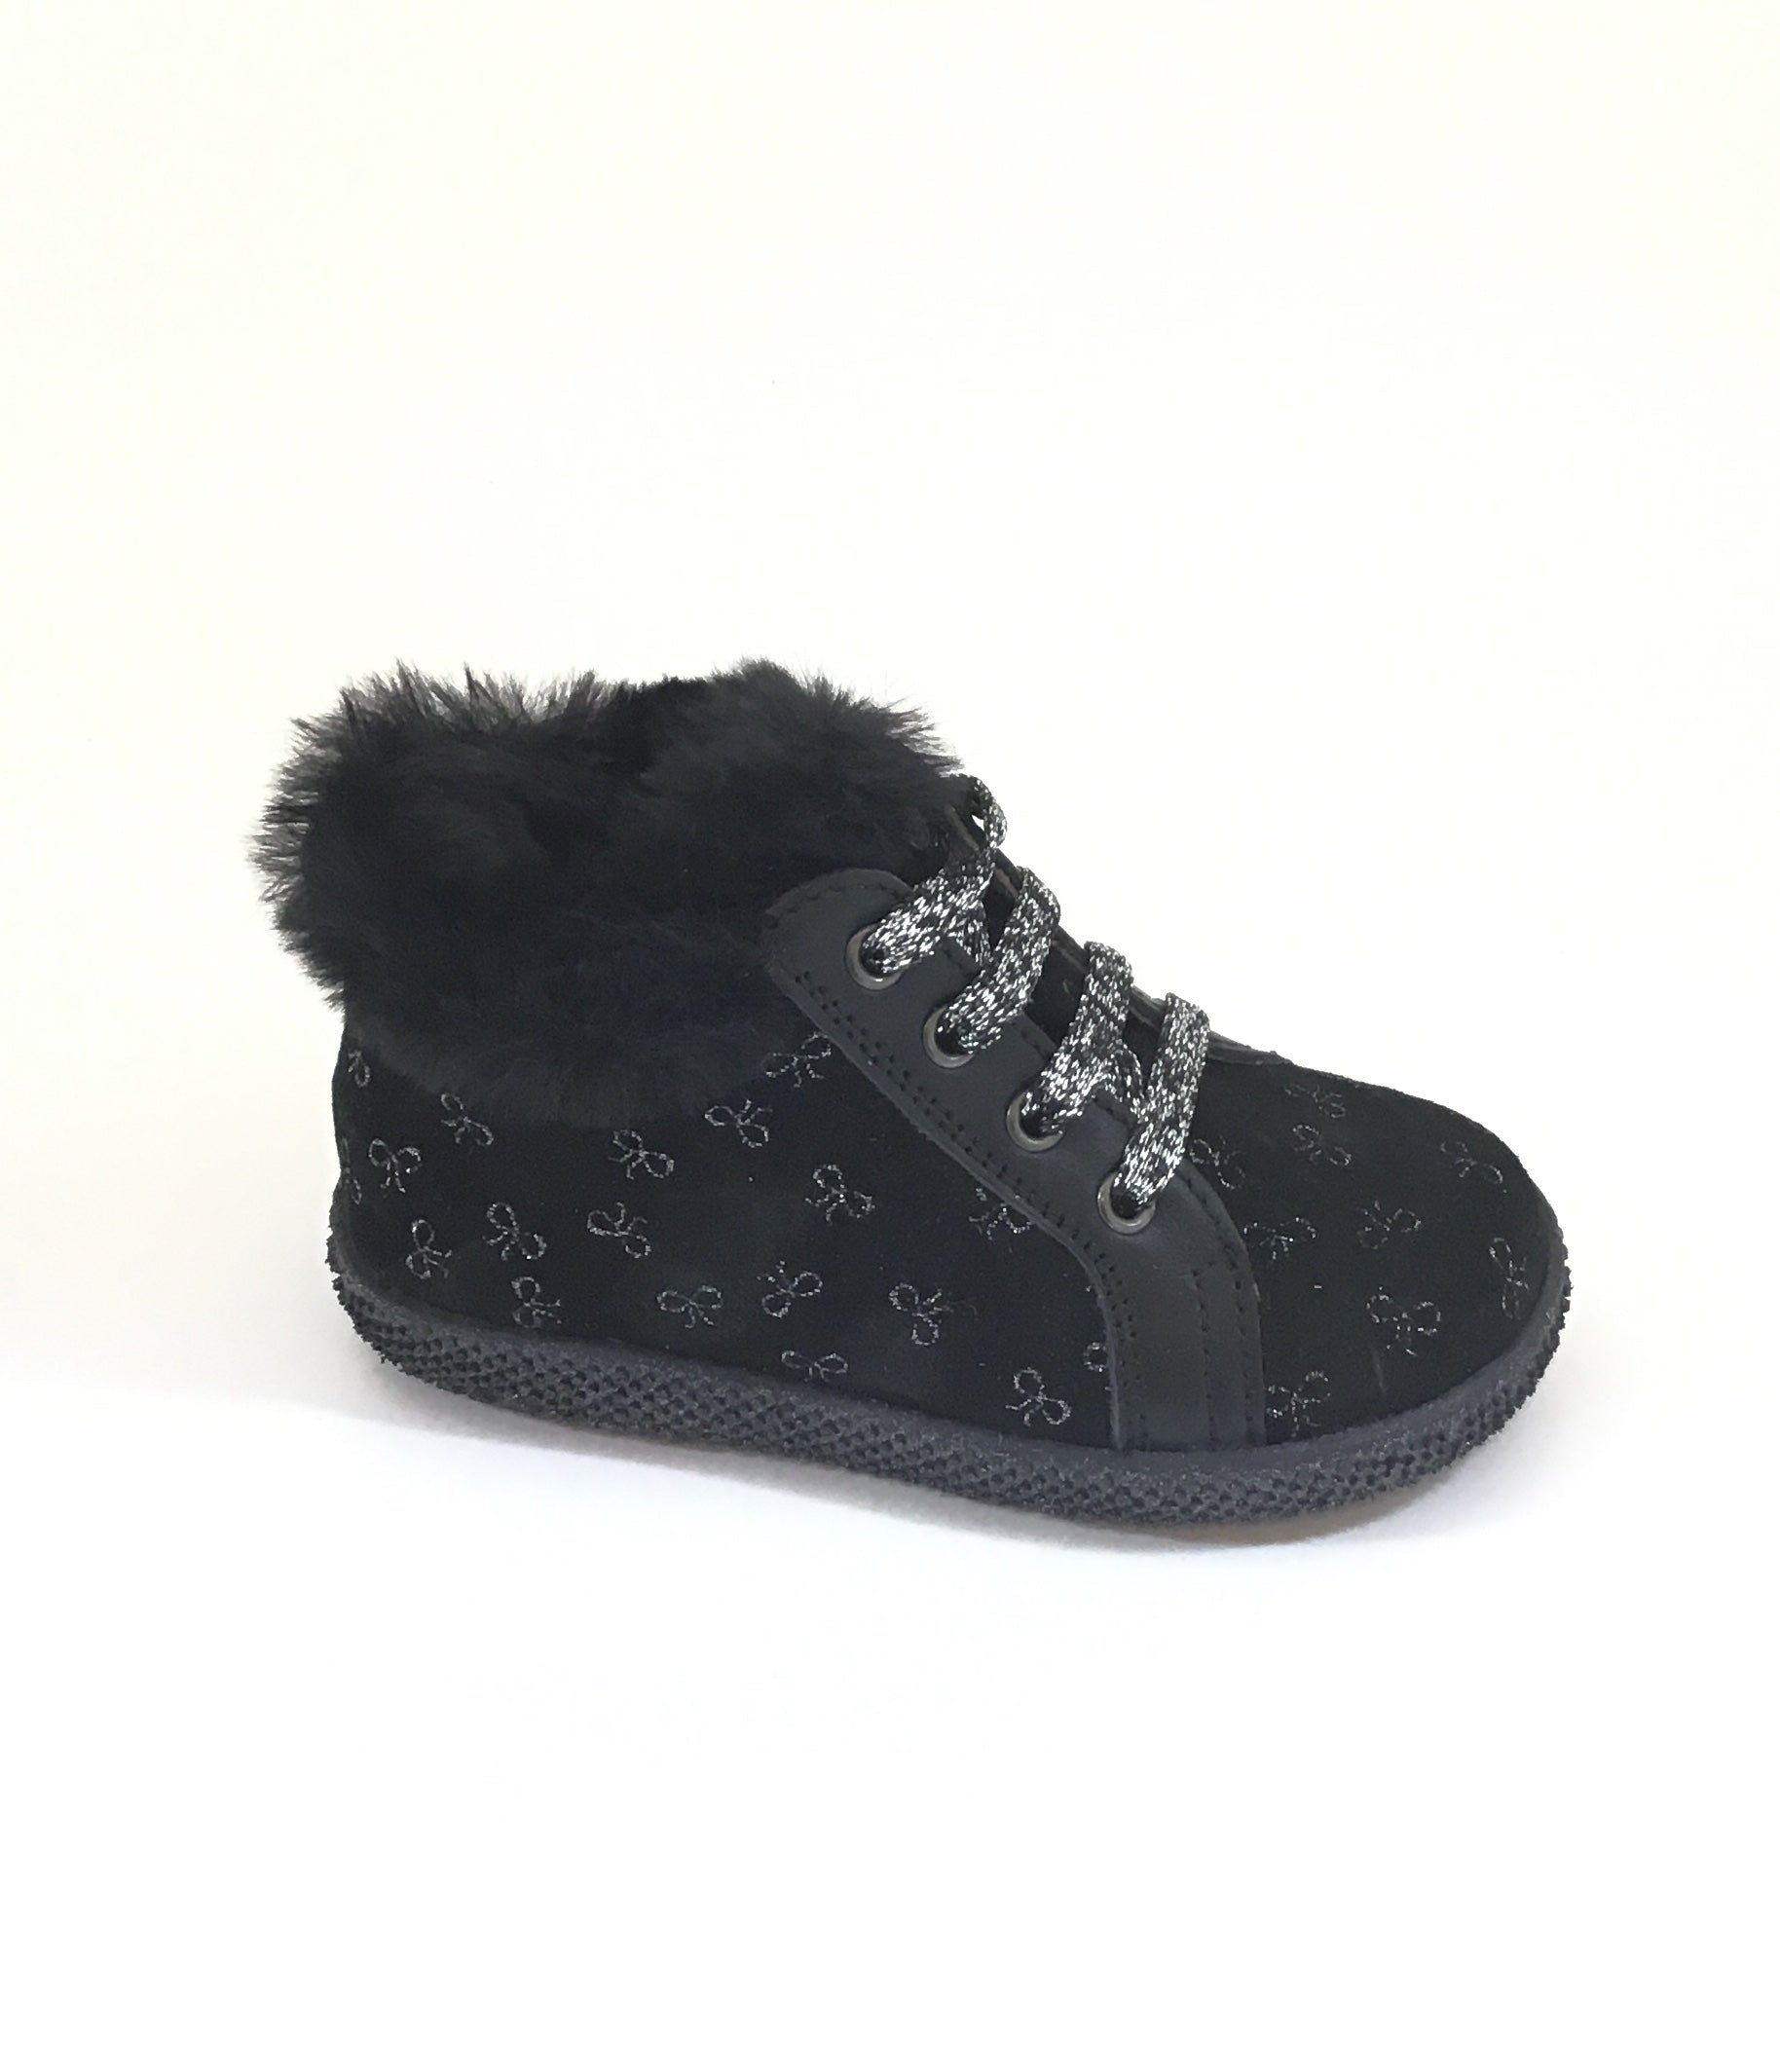 Falcotto Black Laced Shoe with Bow Print